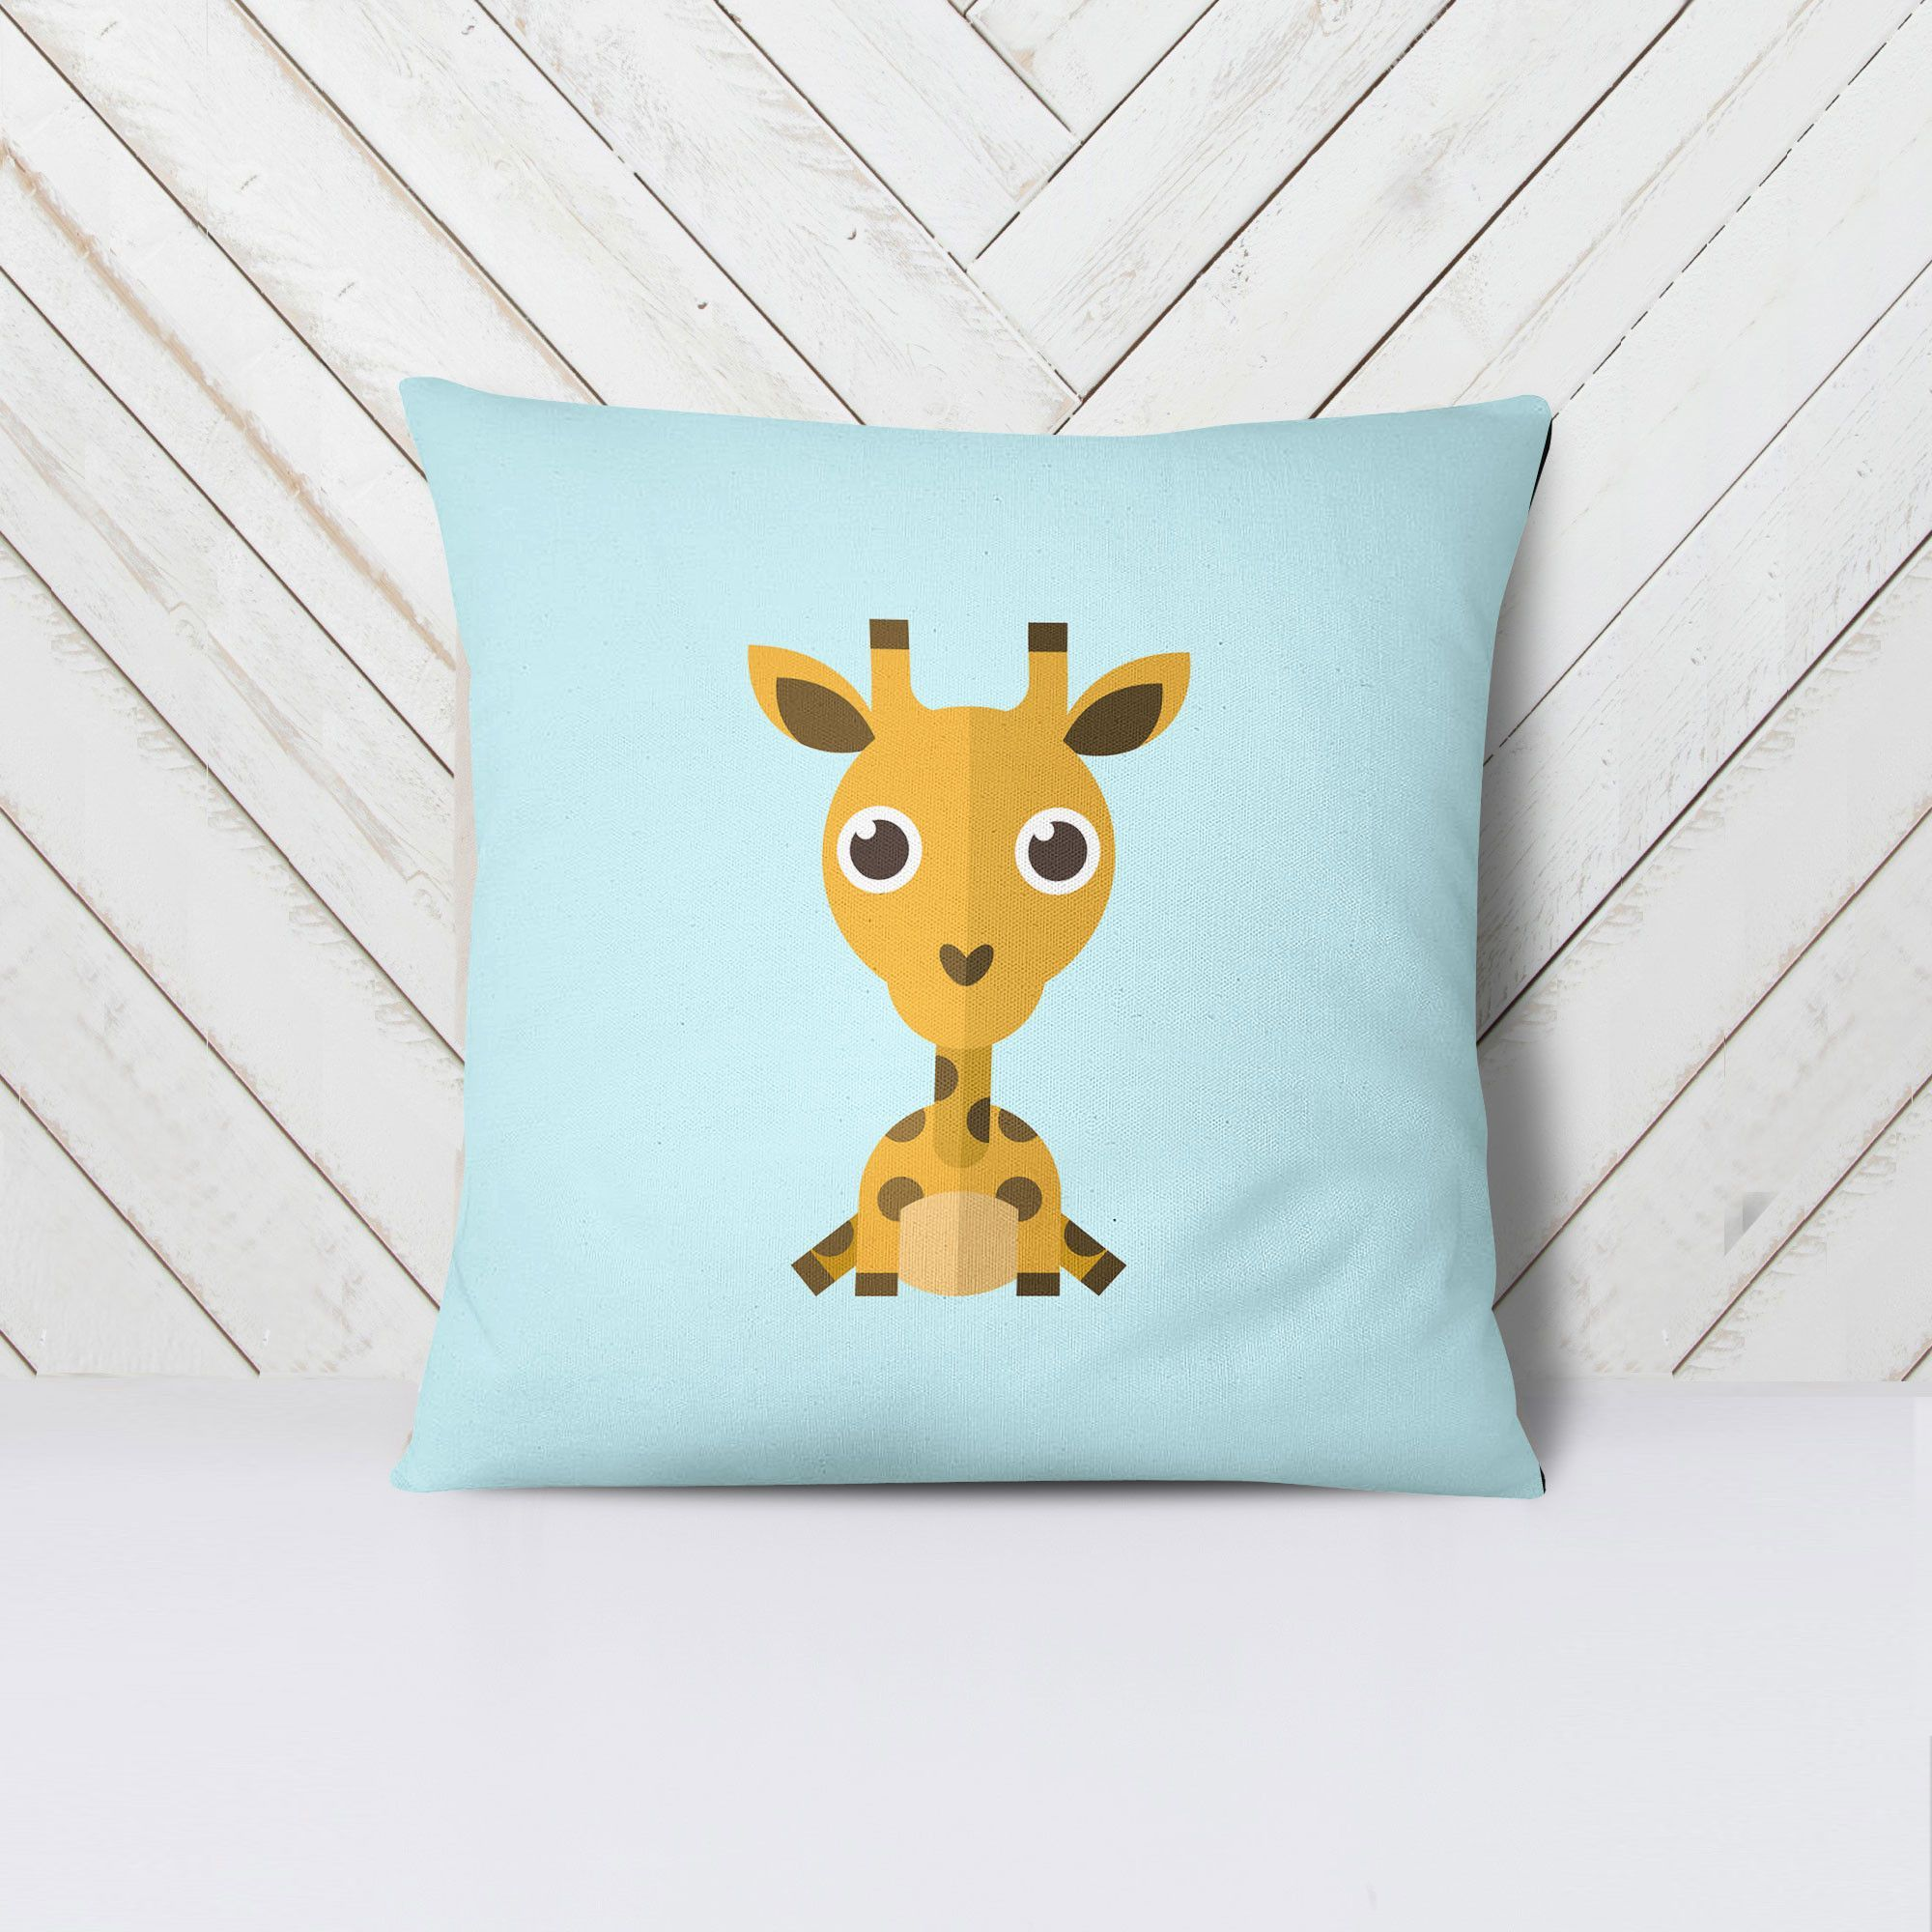 Blue Giraffe - This beautiful and colorful pillow case, complete with the stuffing, is 100% made - cut, sewn and printed - in California. It measures 18x18 inches and it's 80% polyester, 20% cotton fleece. The pillow is machine washable, the pillow insert is hand-wash only.